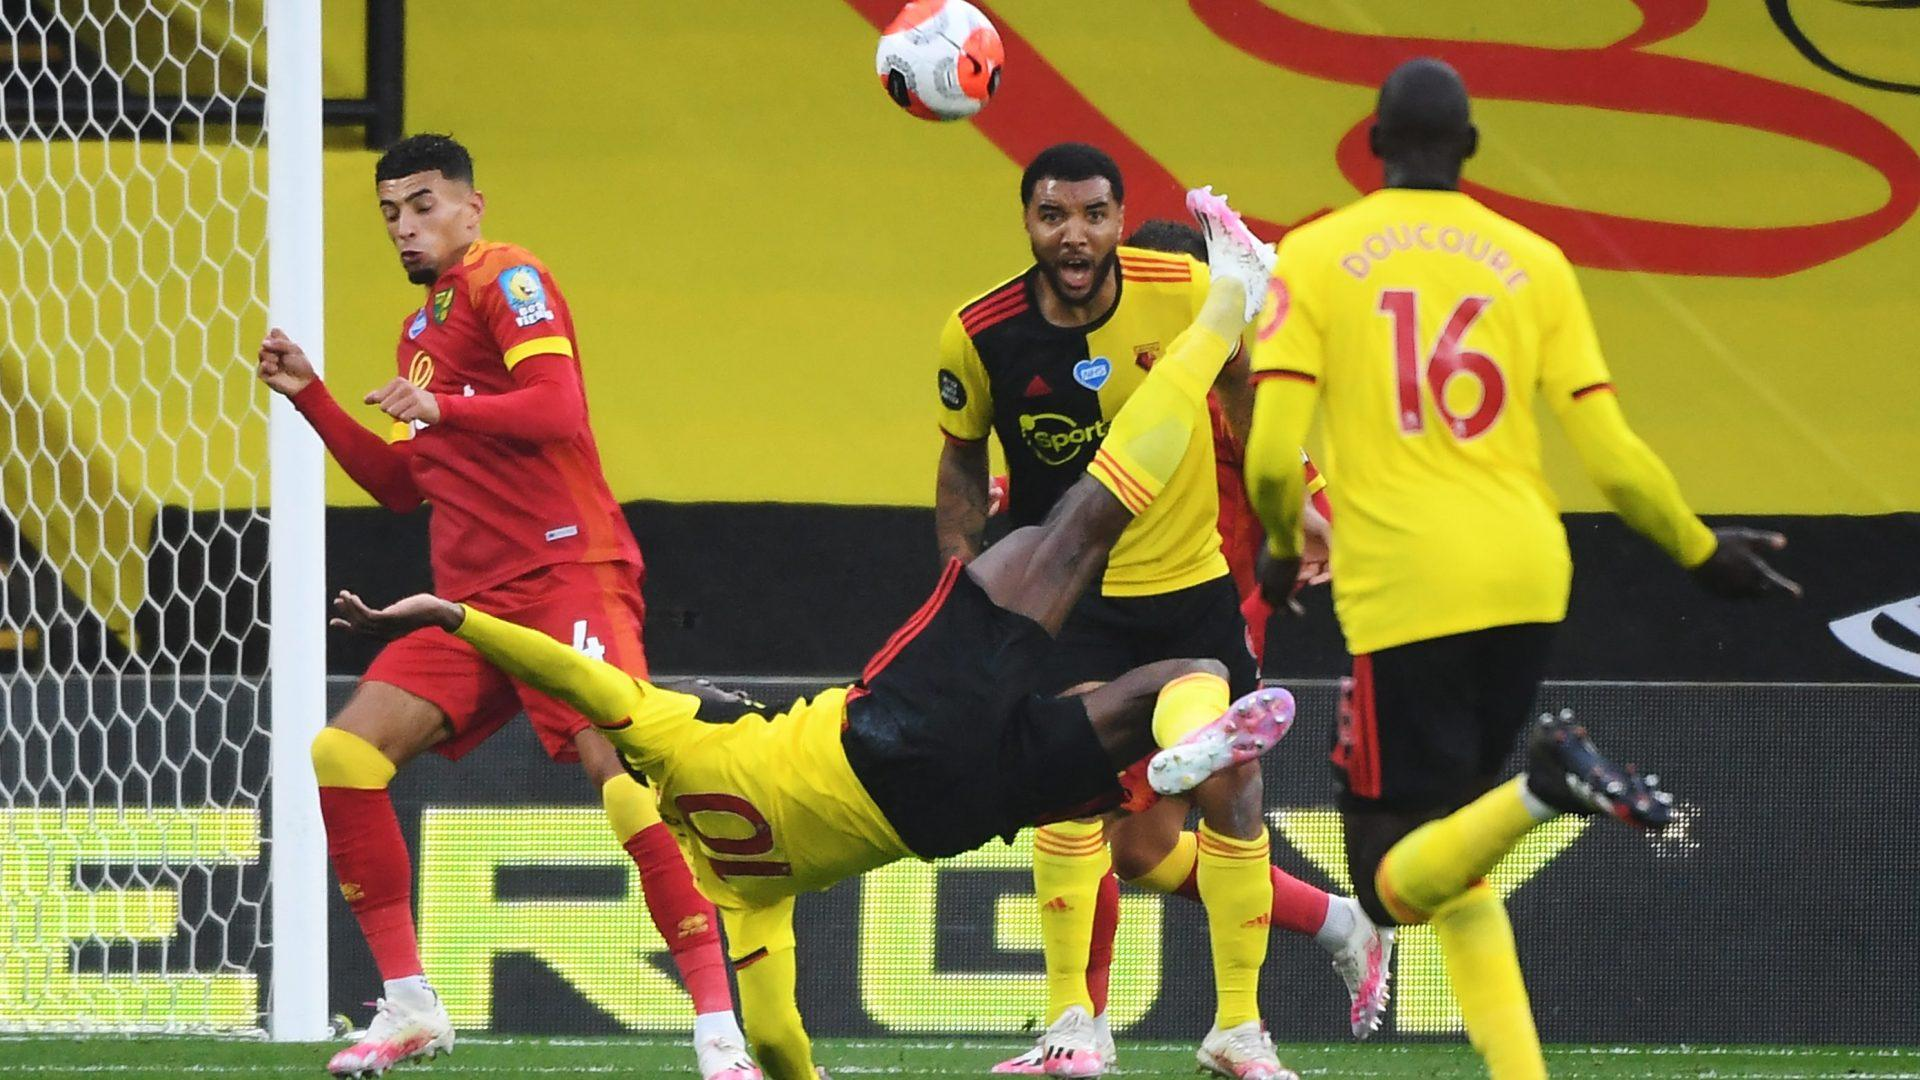 Welbeck's Goal of Year candidate sends Watford past Norwich City